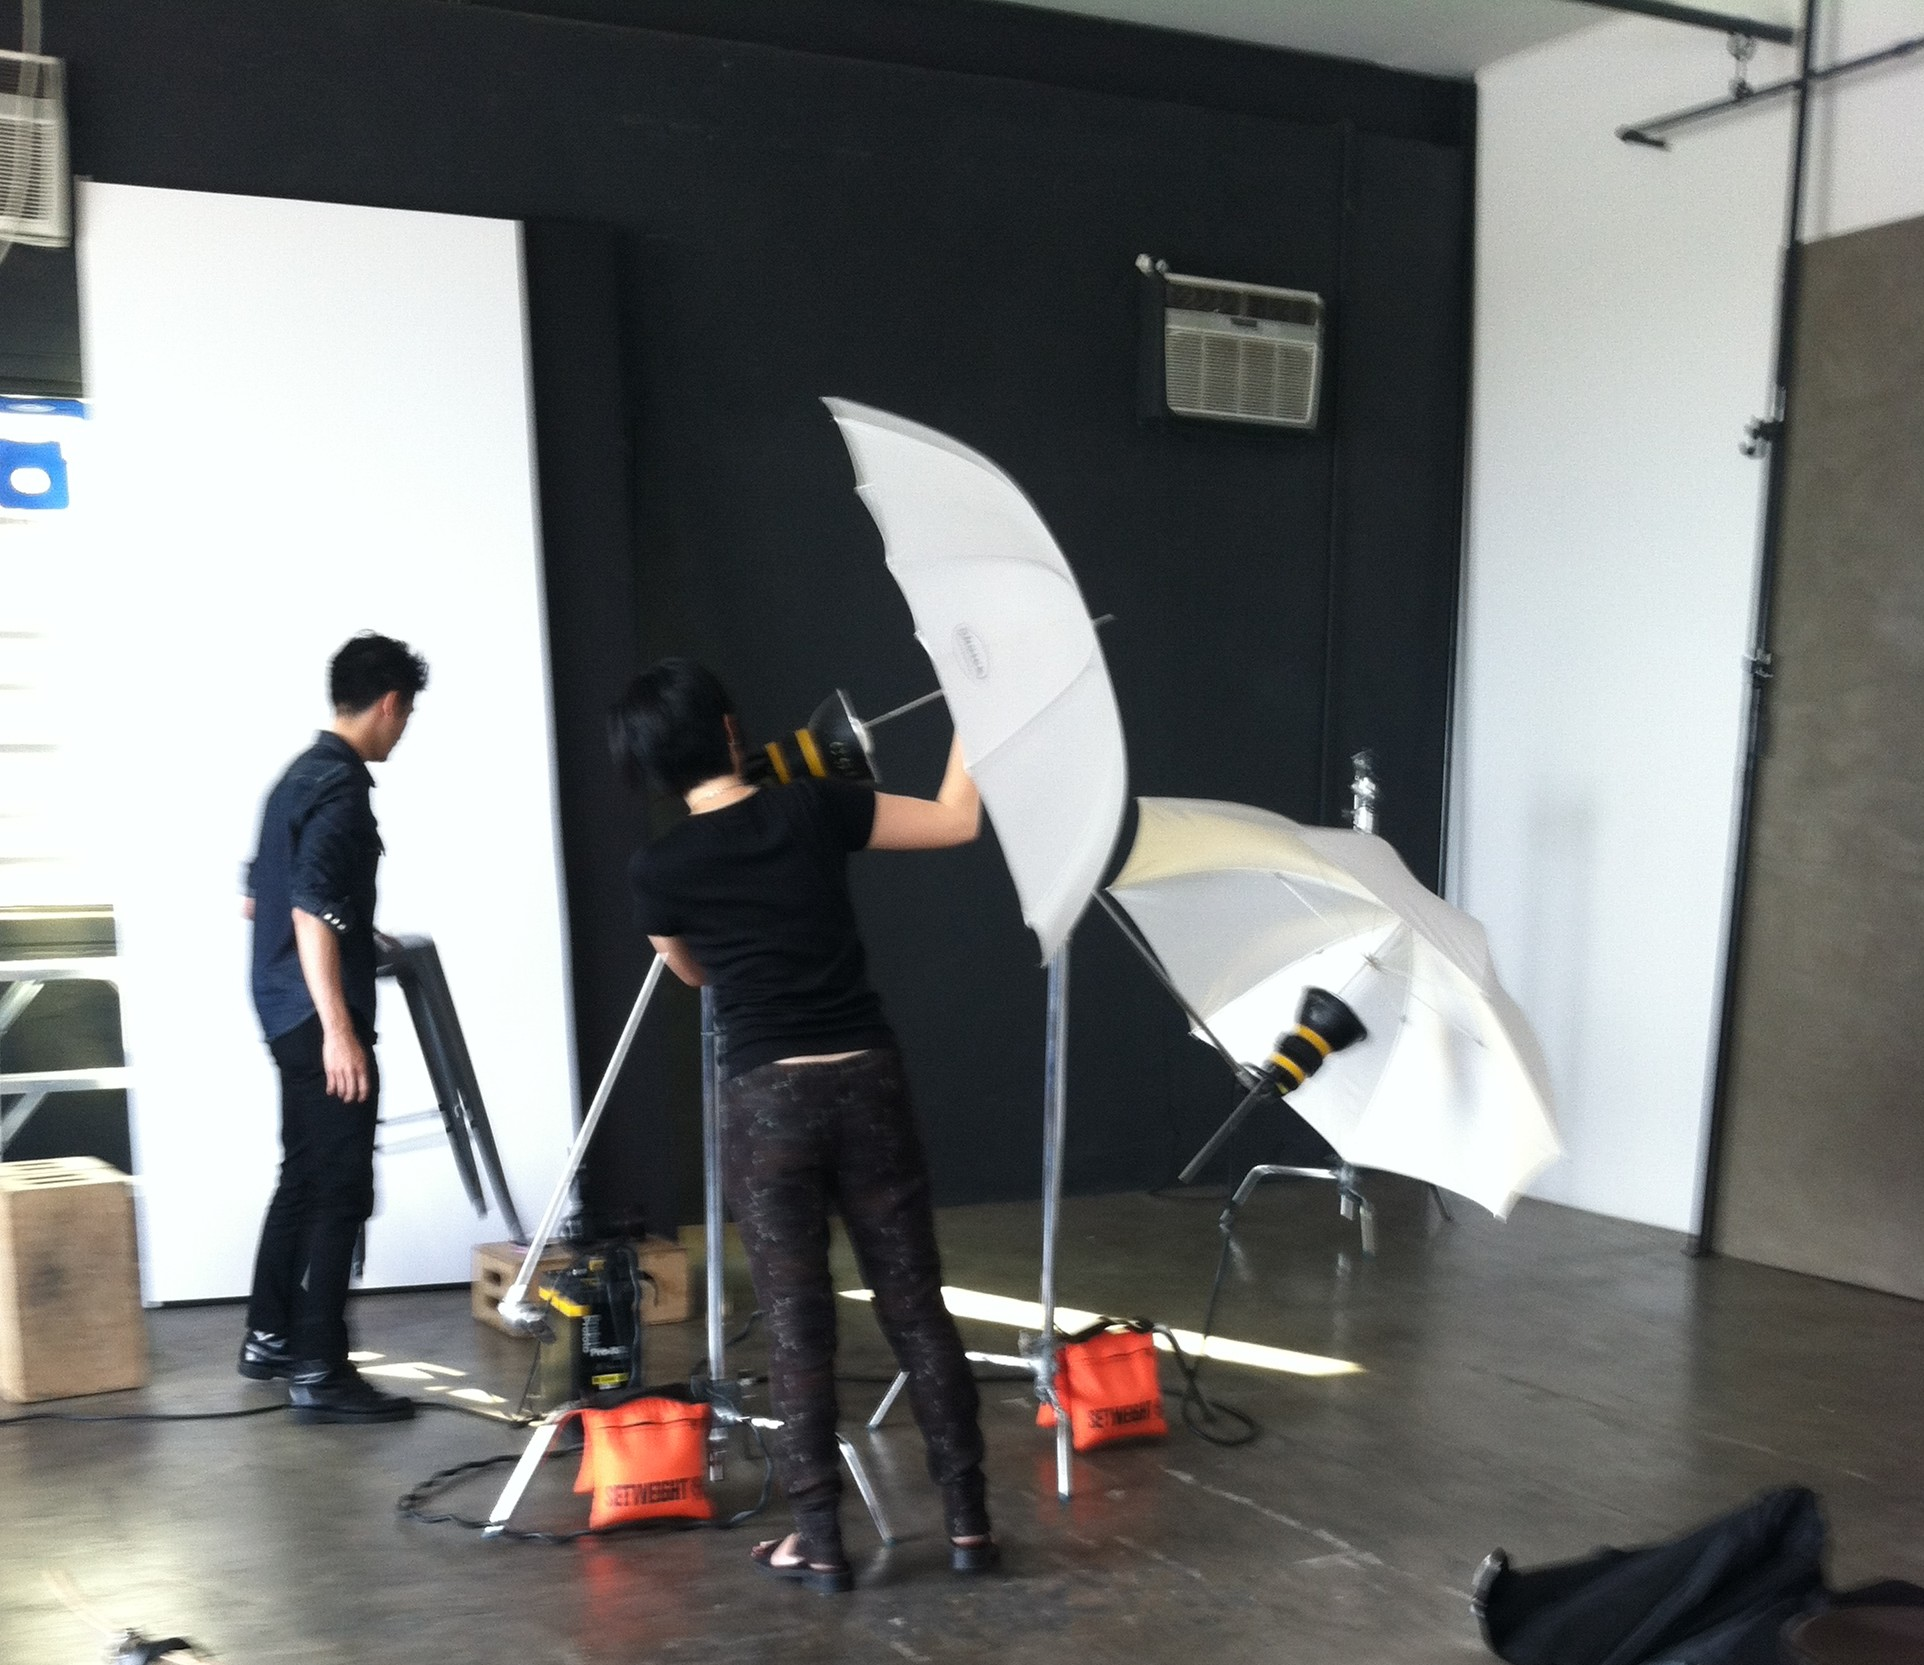 Our photographers set up for the shoot